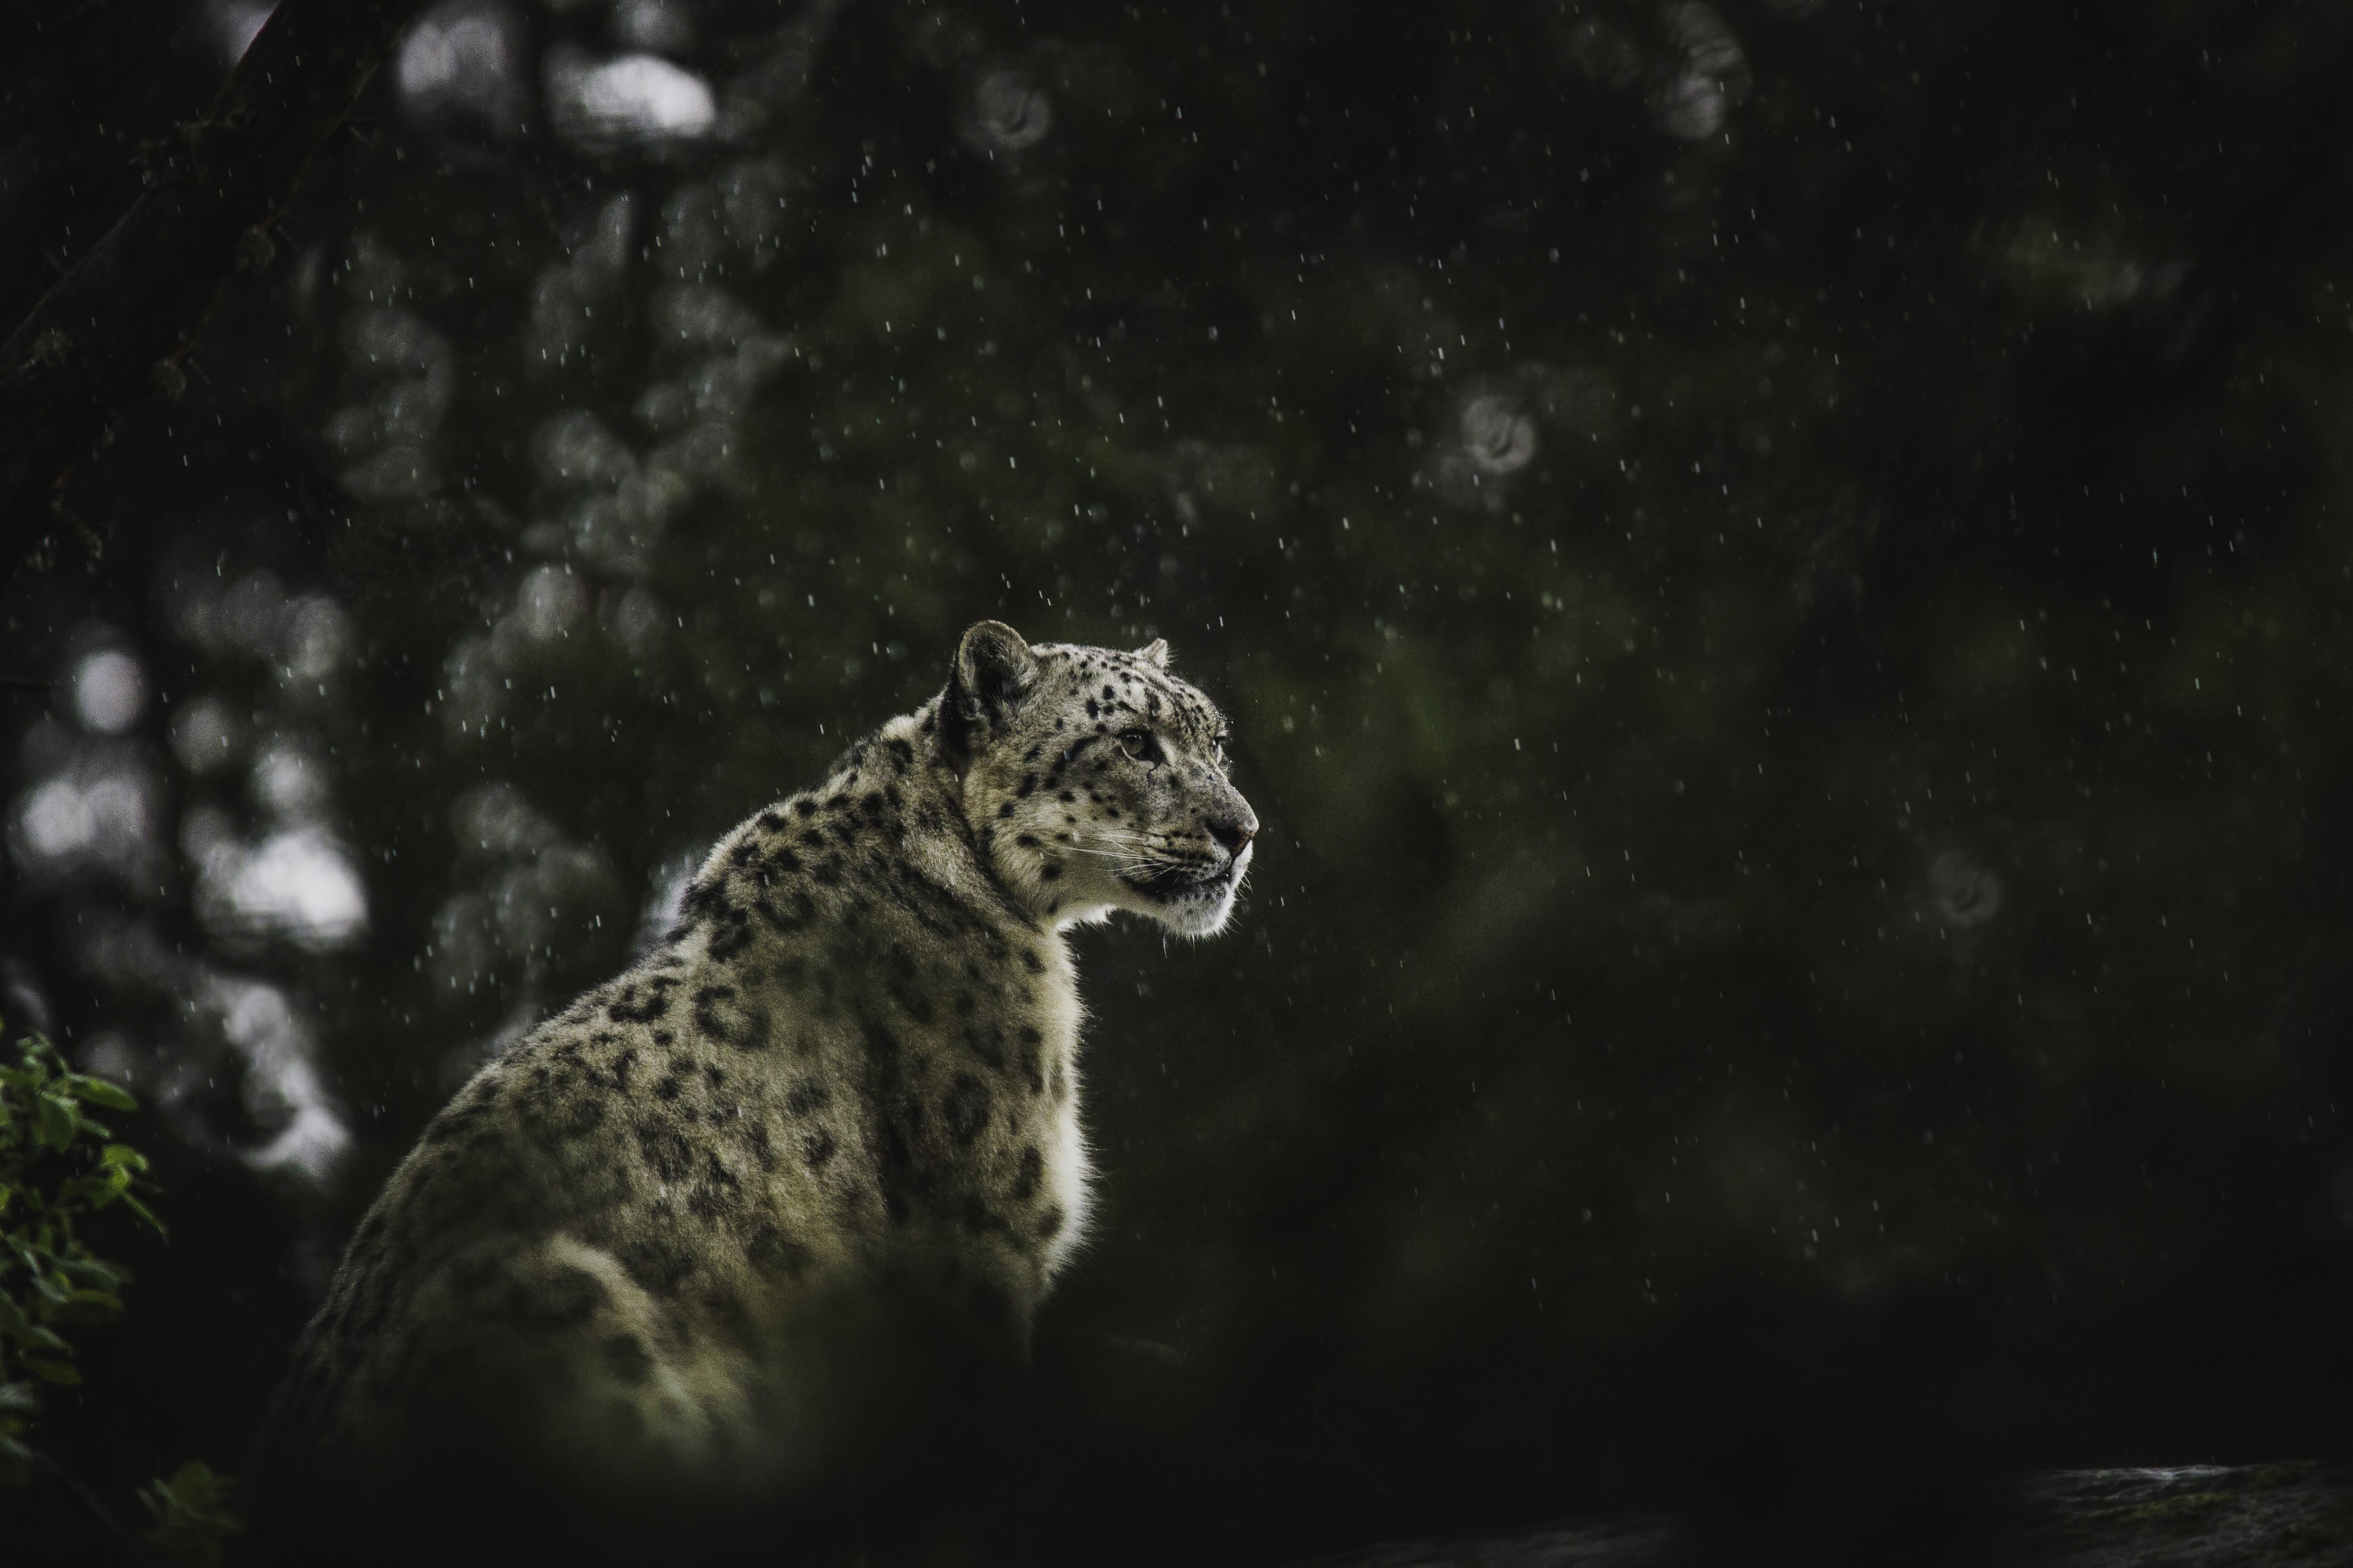 snow leopard looking outward